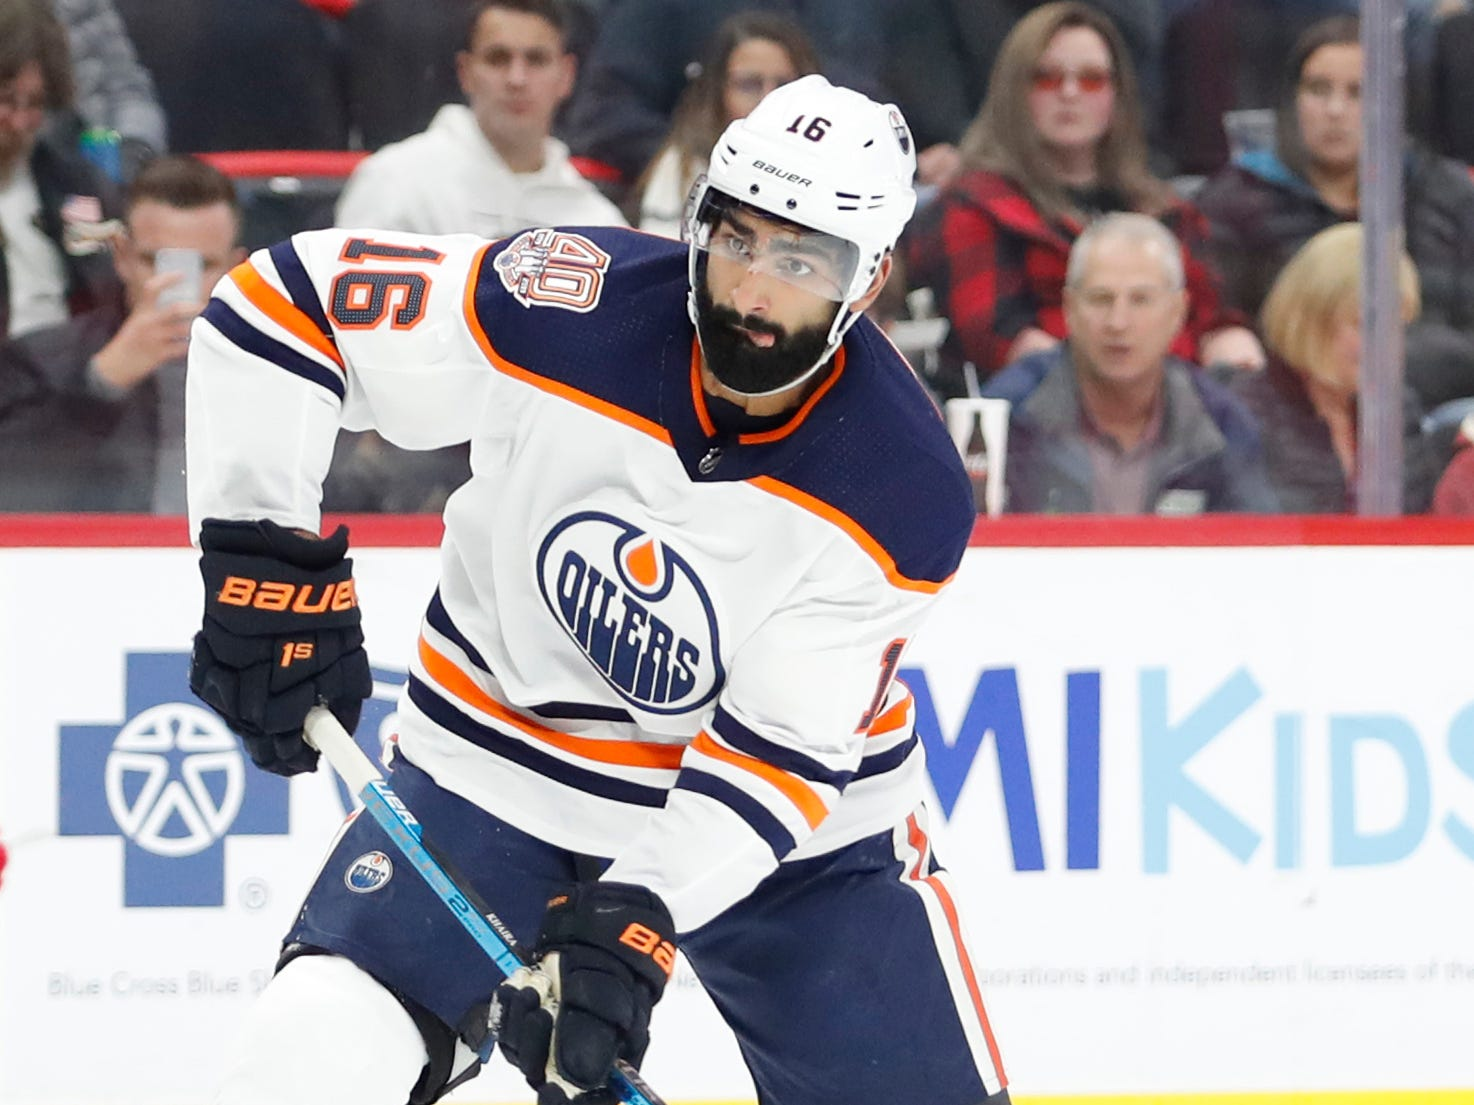 Dec. 19: Edmonton Oilers forward Jujhar Khaira was suspended for two games for cross-checking St. Louis Blues defenseman Vince Dunn. Lost pay: $7,258.